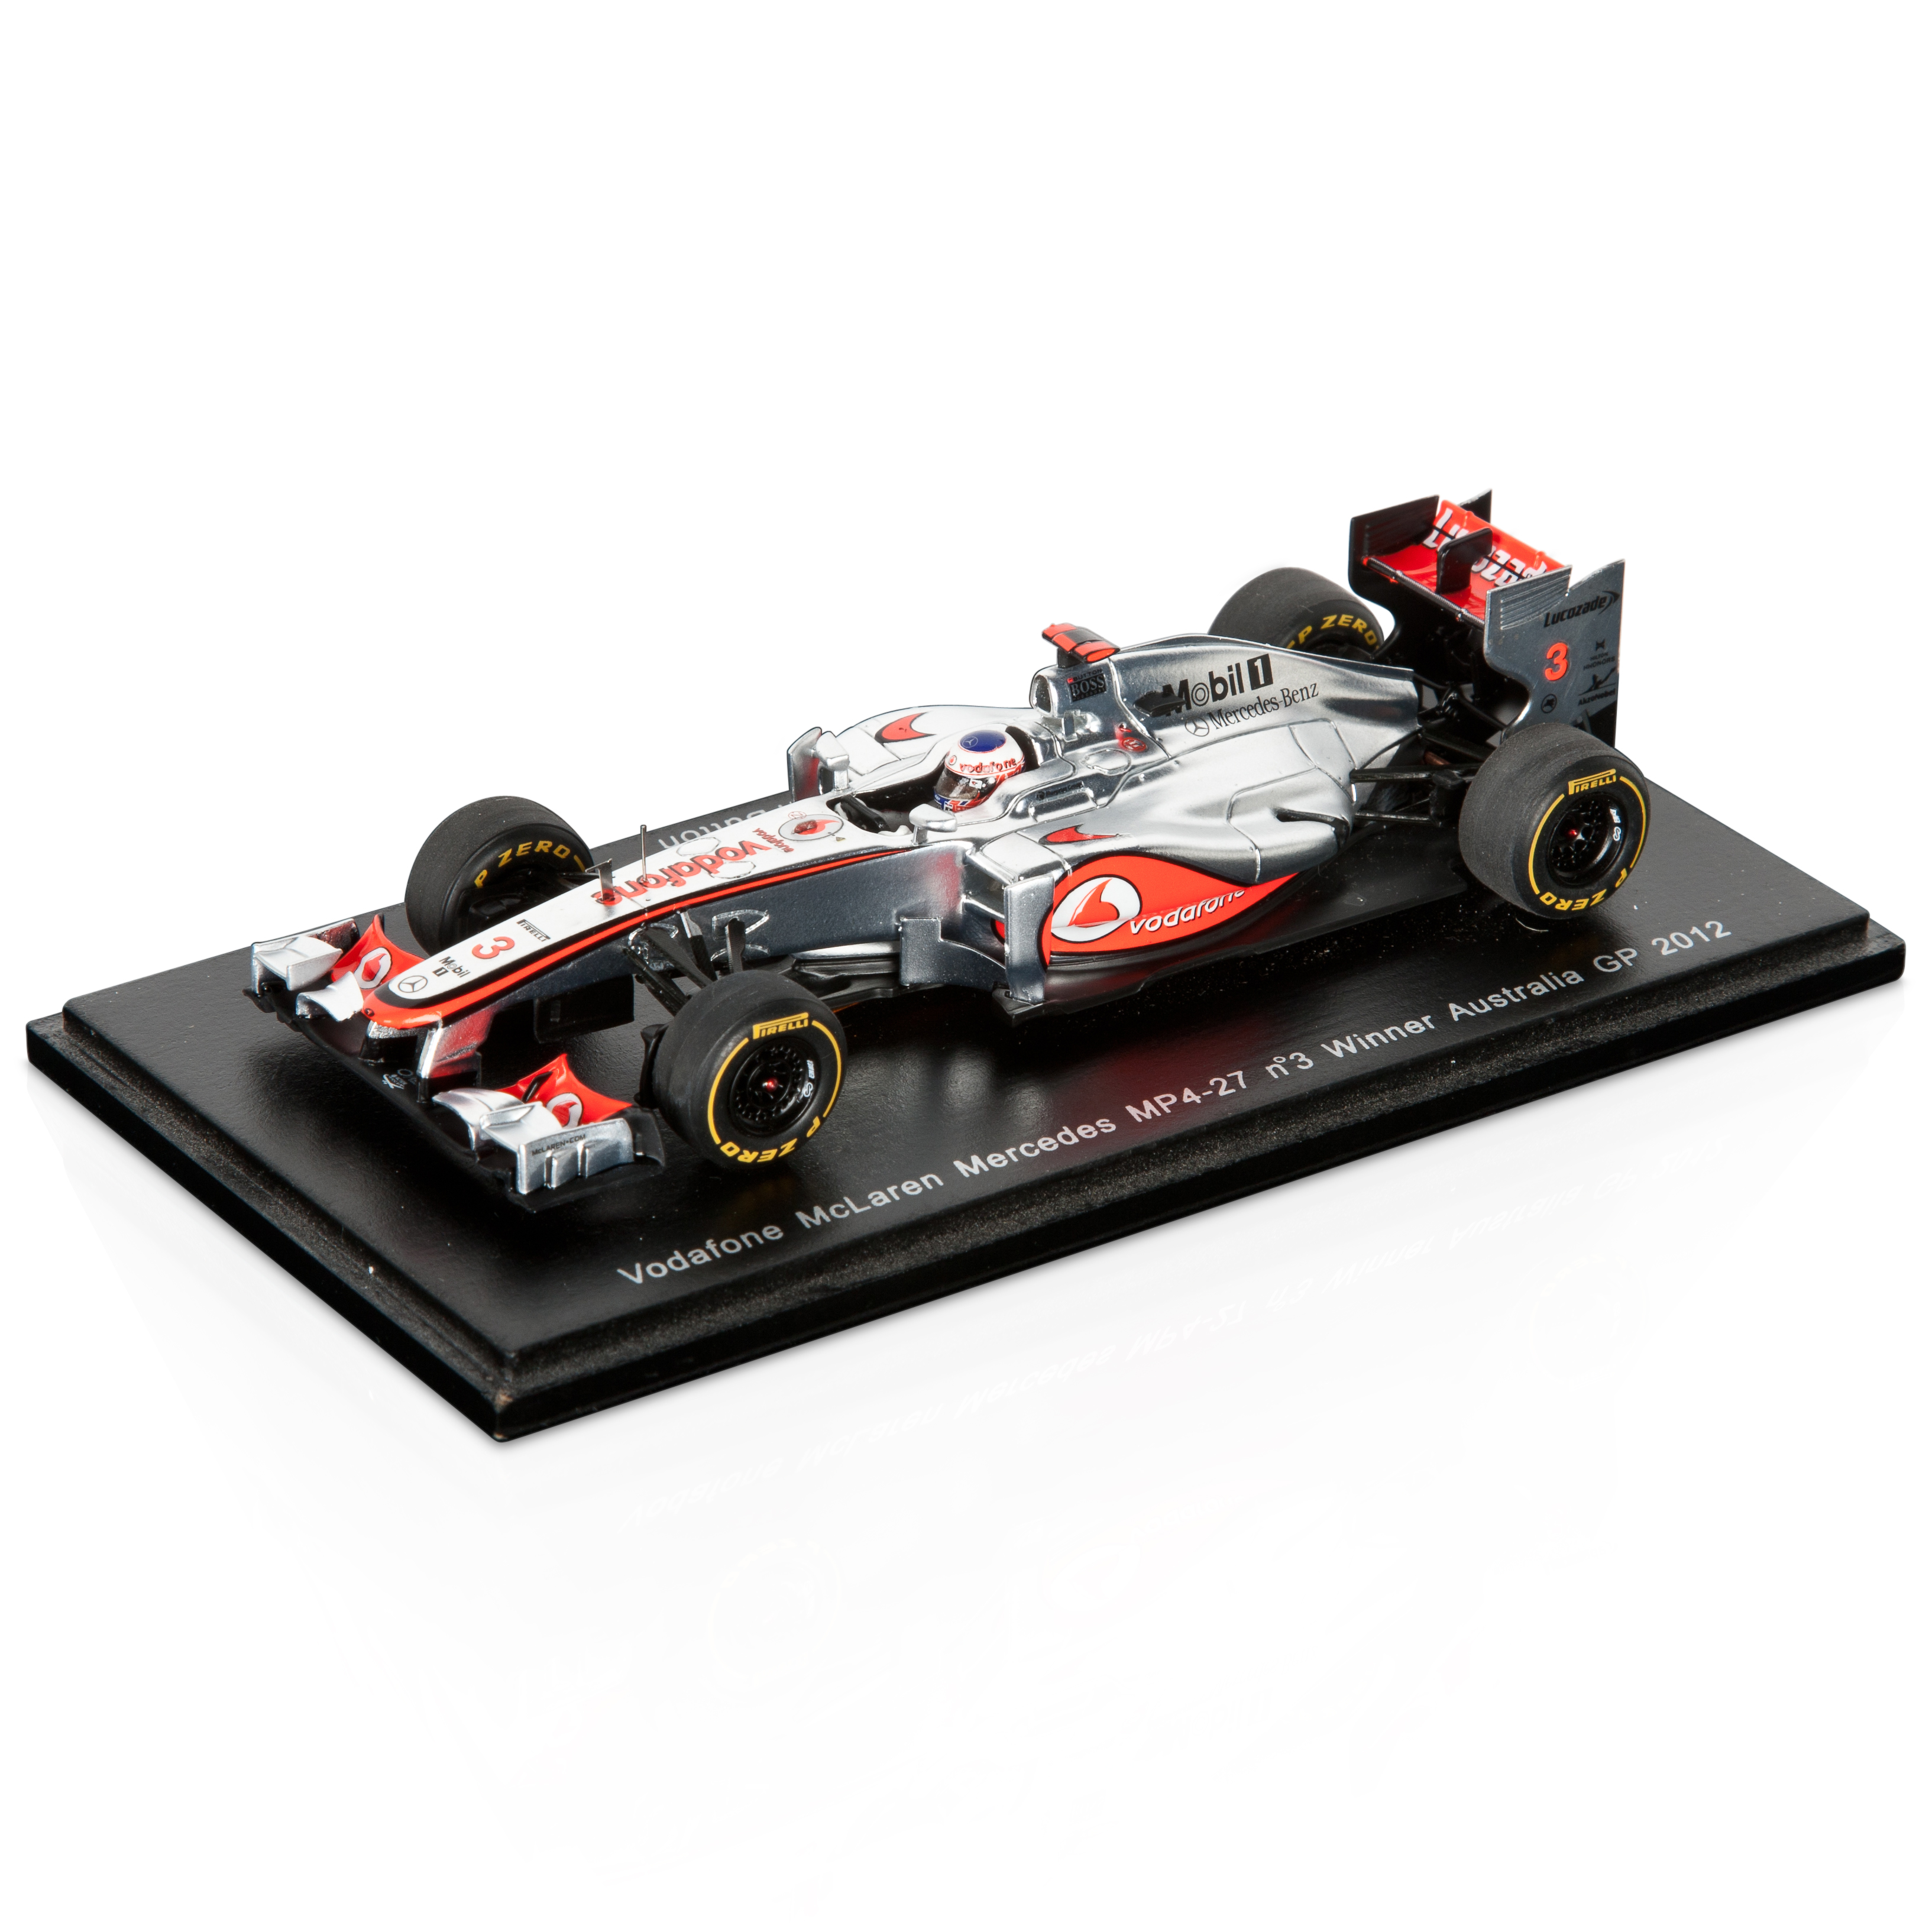 Vodafone McLaren MP4-27 Jenson Button Winner Australian GP 2012 1:43 Scale